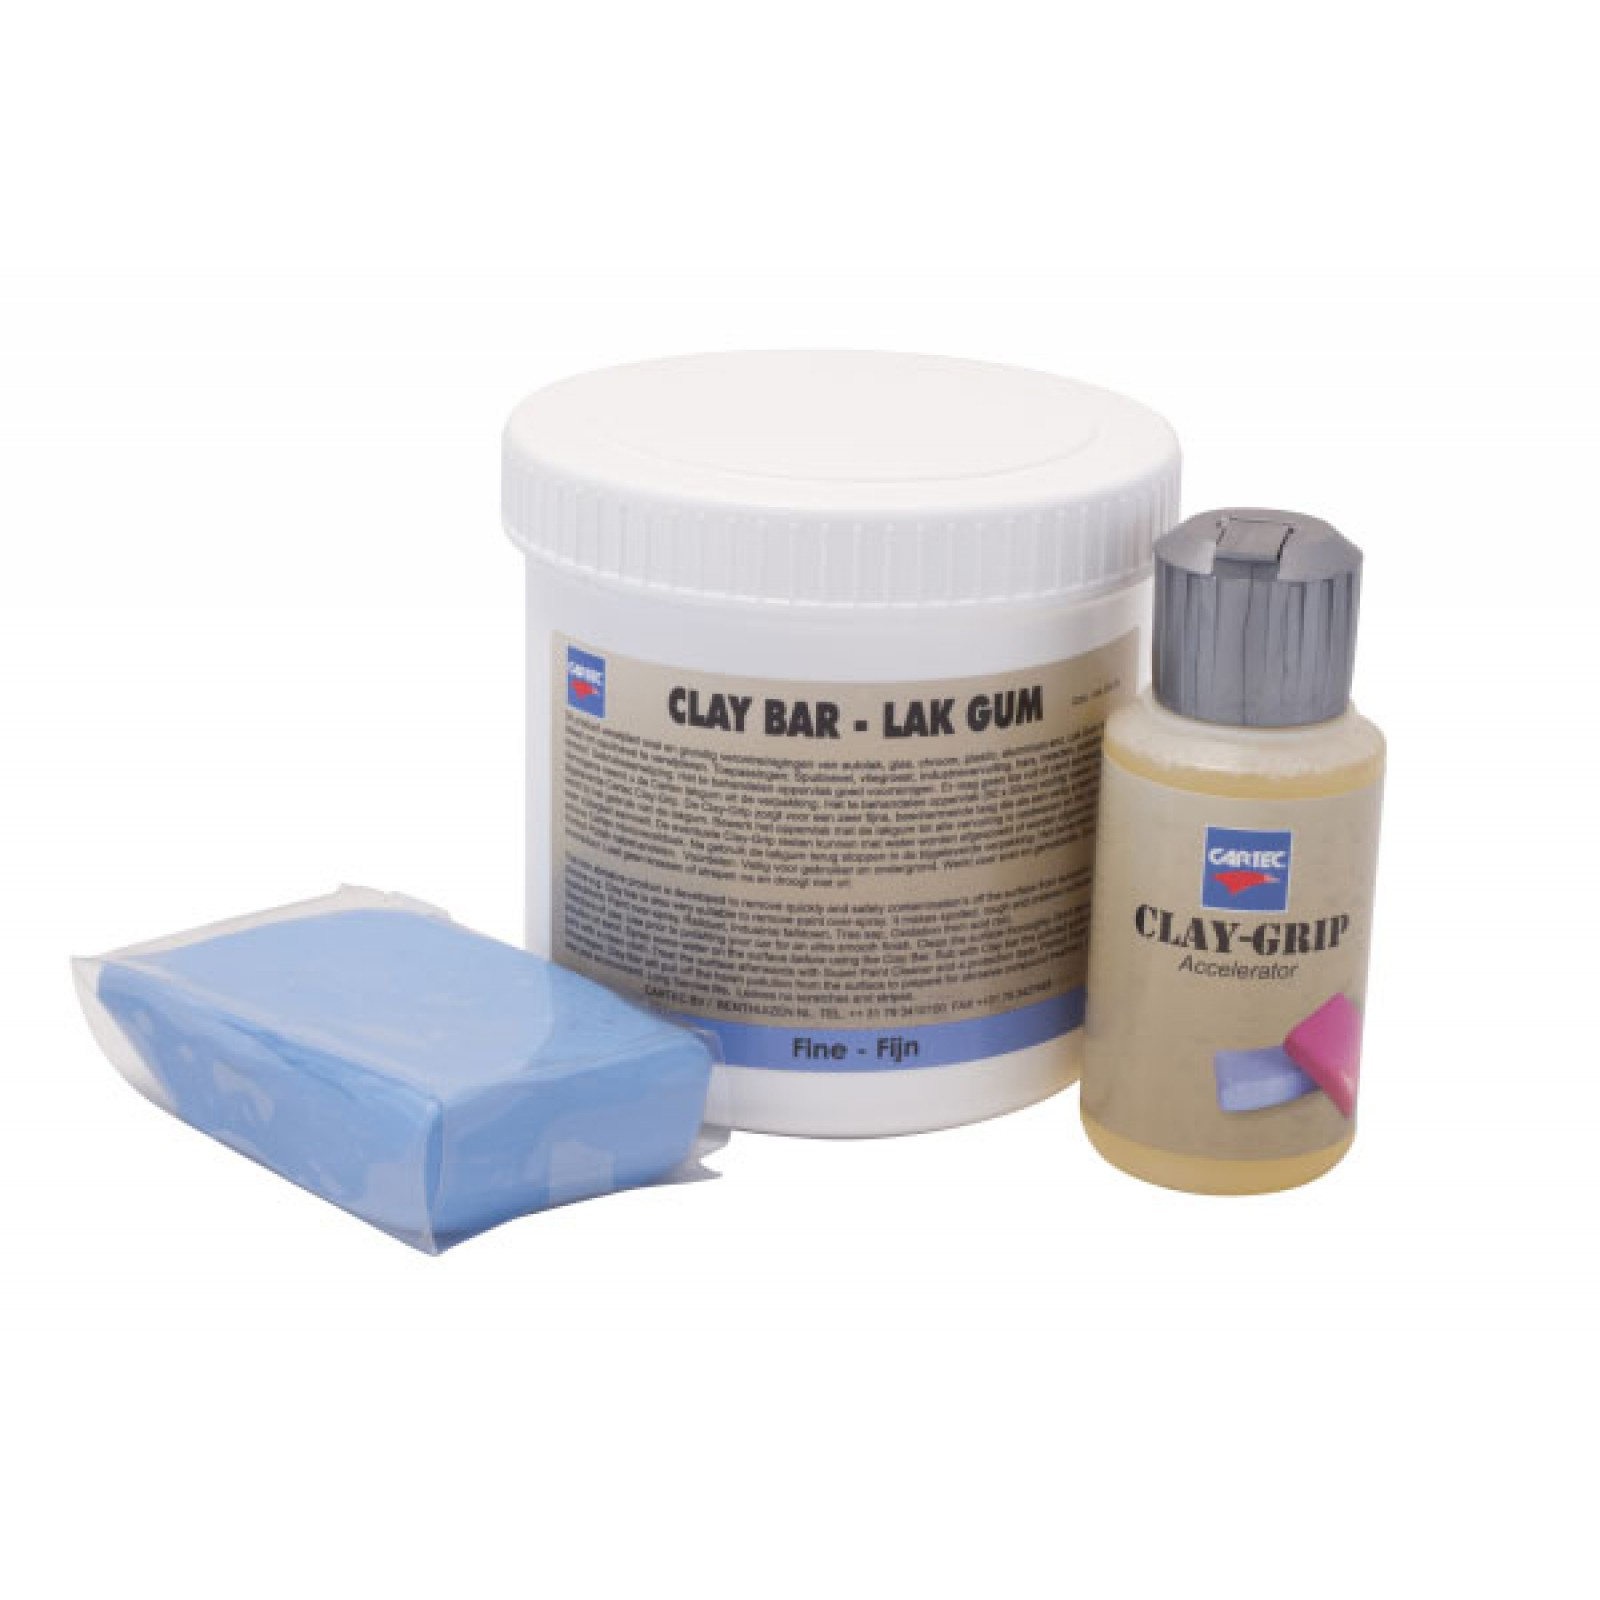 Lakgum Fijn/Blauw (Incl. 100ml Clay Grip) 200gr